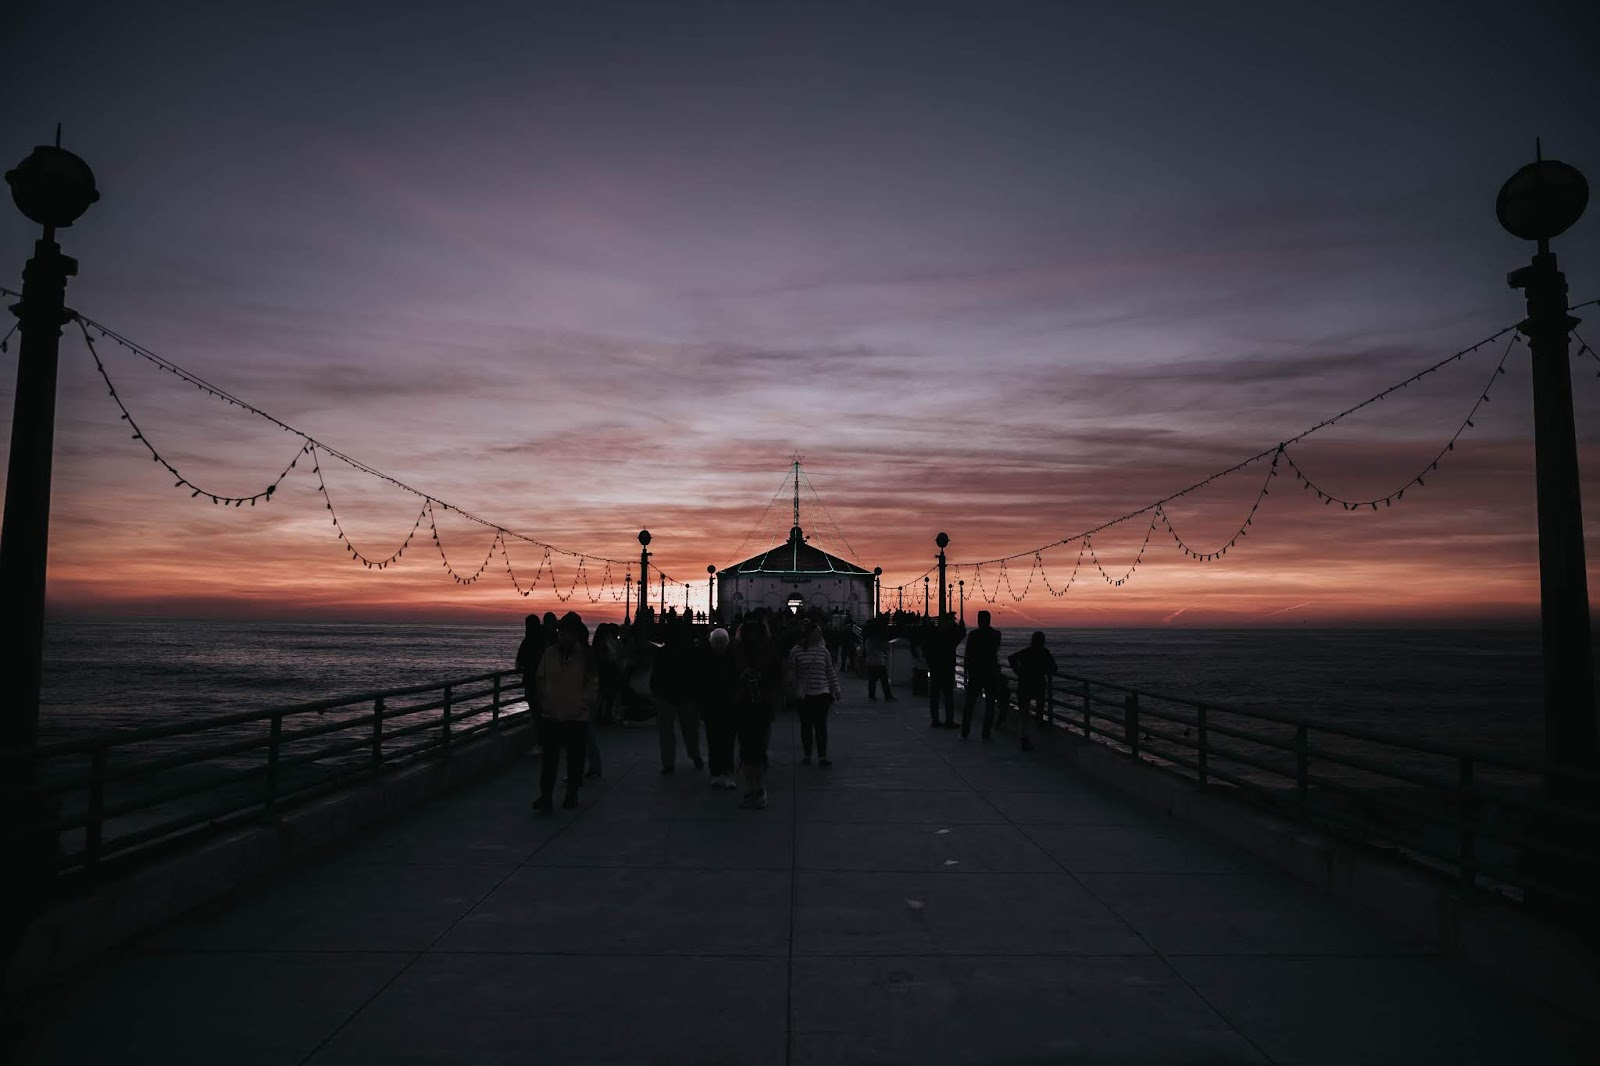 groups of people walk down a pier at sunset for a blog post about movie Dunkirk